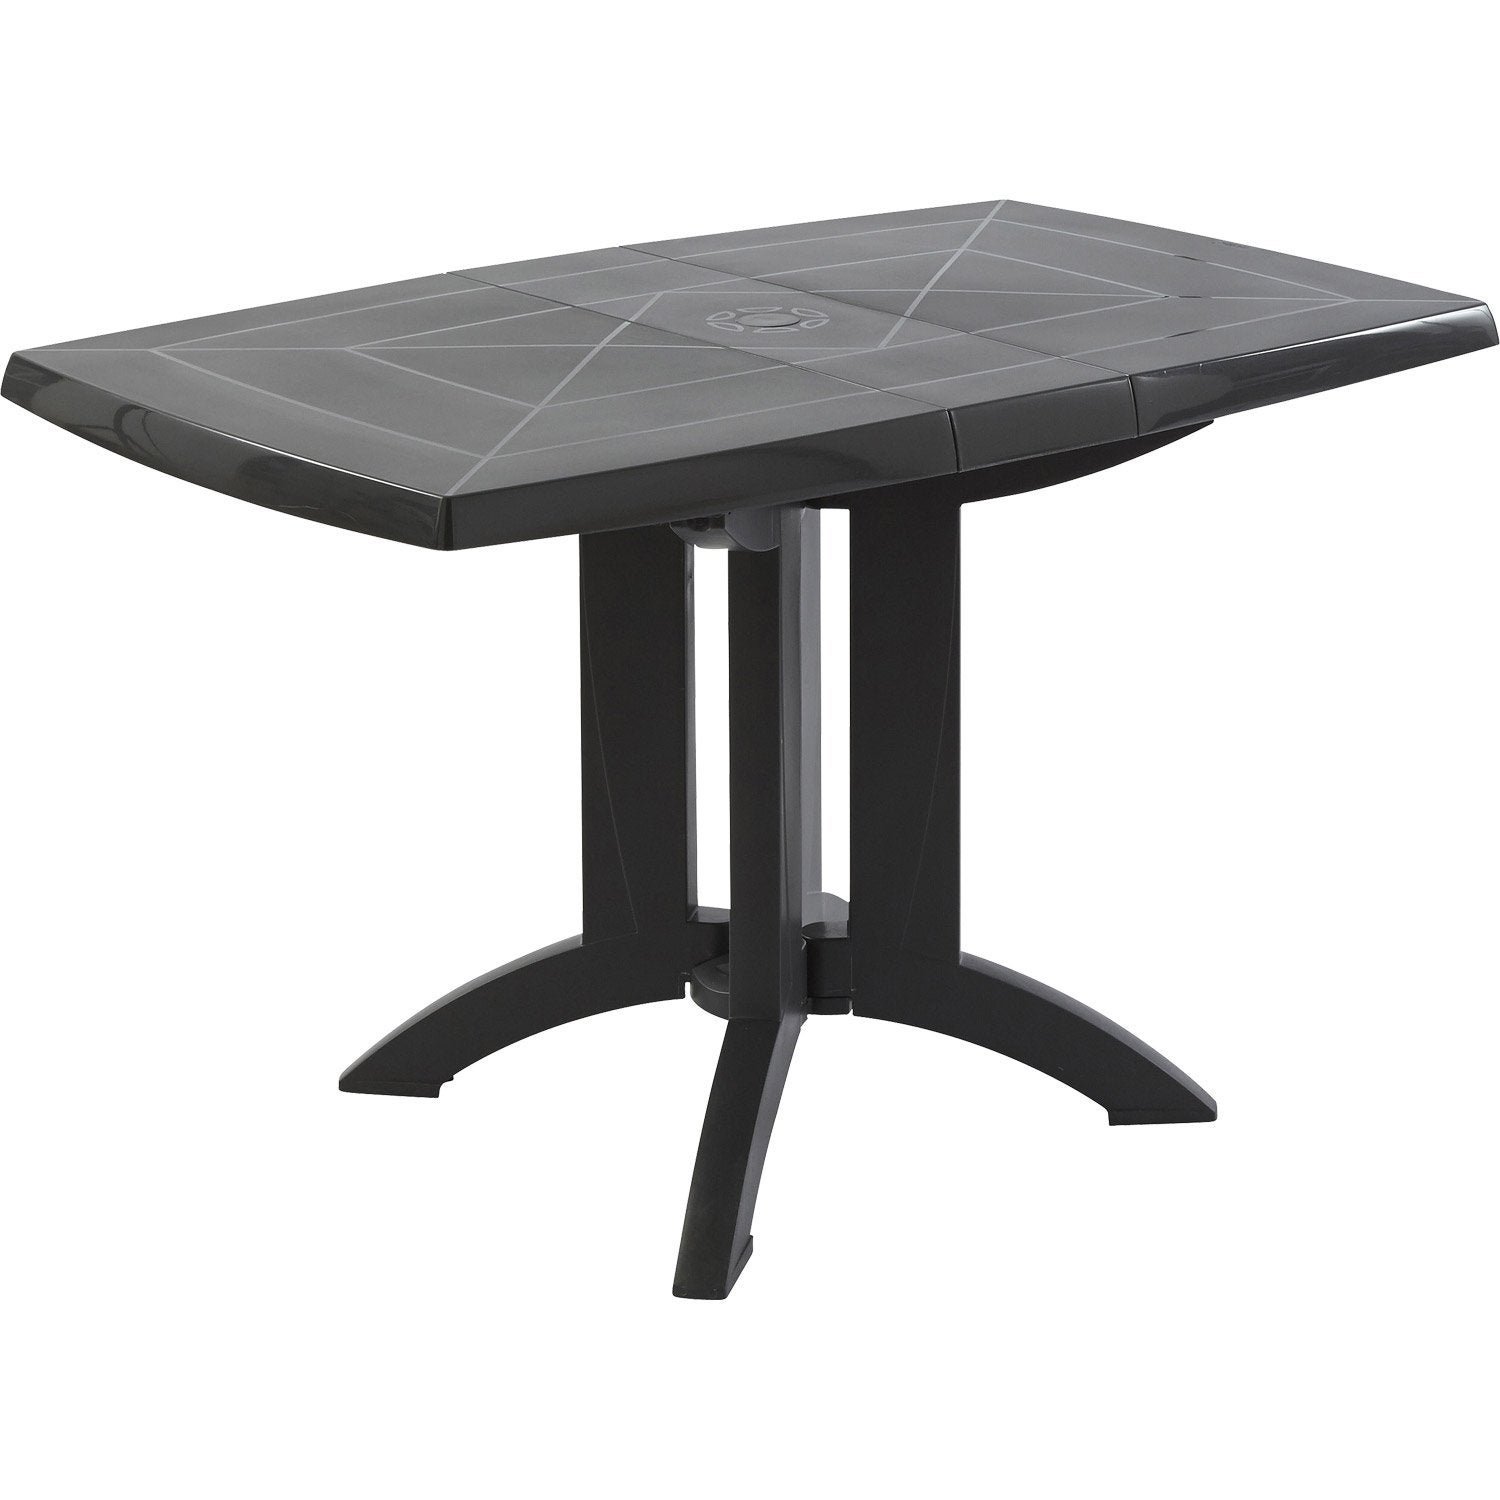 Table de jardin grosfillex v ga rectangulaire anthracite 4 - Table de jardin resine blanche ...